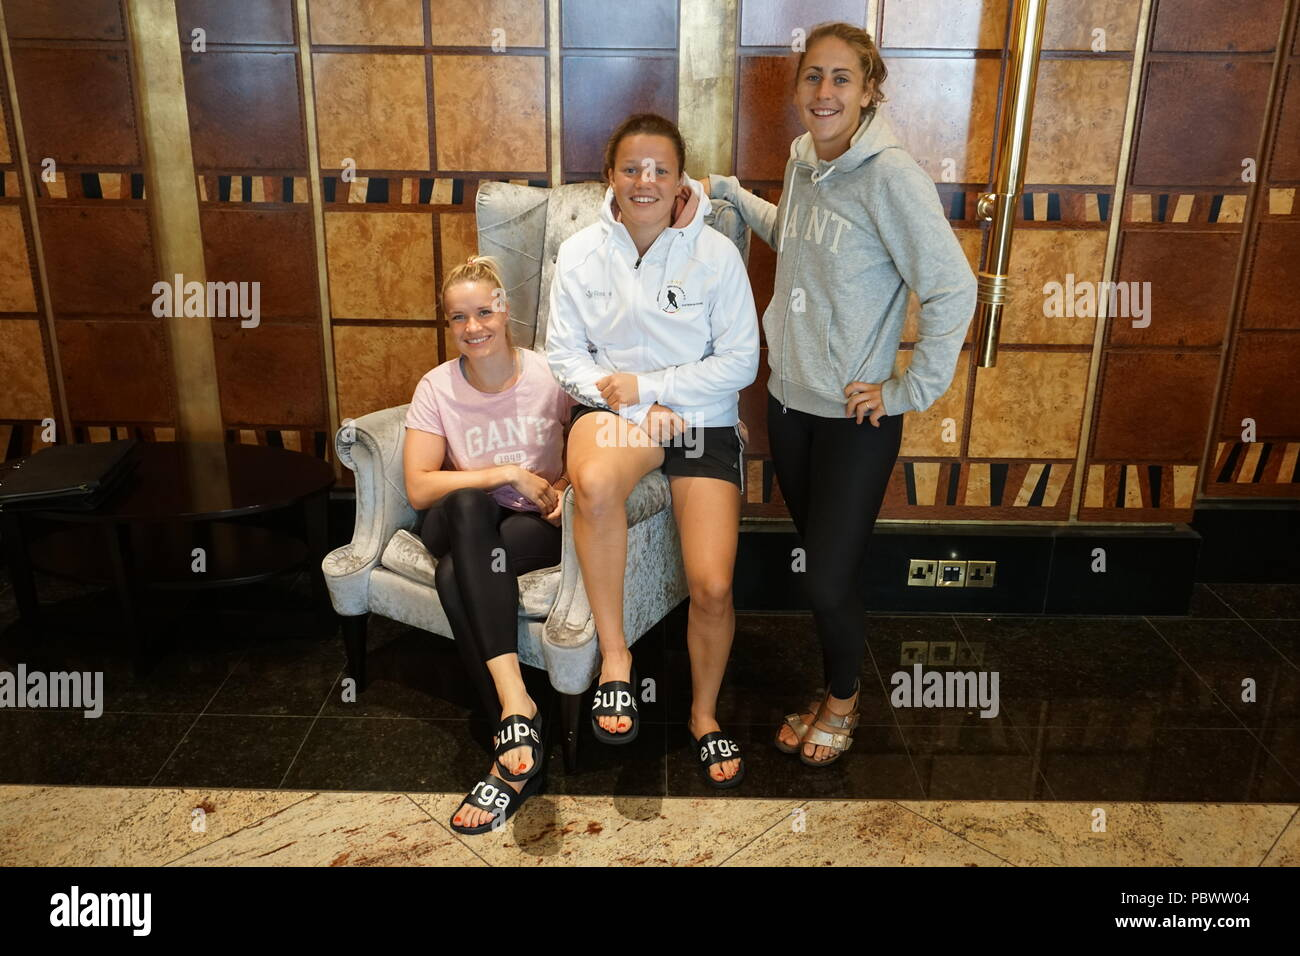 30.07.2018, Great Britain, London: Hockey, World Cup, Field, Ladies. The hockey players (l-r) goalkeeper Julia Ciupka, Charlotte Stapenhorst, Marie Mävers from Germany sit in the London team hotel Grange City. The German women's hockey team will once again face Spain in the quarter-finals of the World Cup in London. The Olympic bronze medallist Germany had previously secured first place in preliminary round group C with three wins and was thus directly qualified for the round of the best eight. Photo: Nina Niedermeyer/dpa - Stock Image